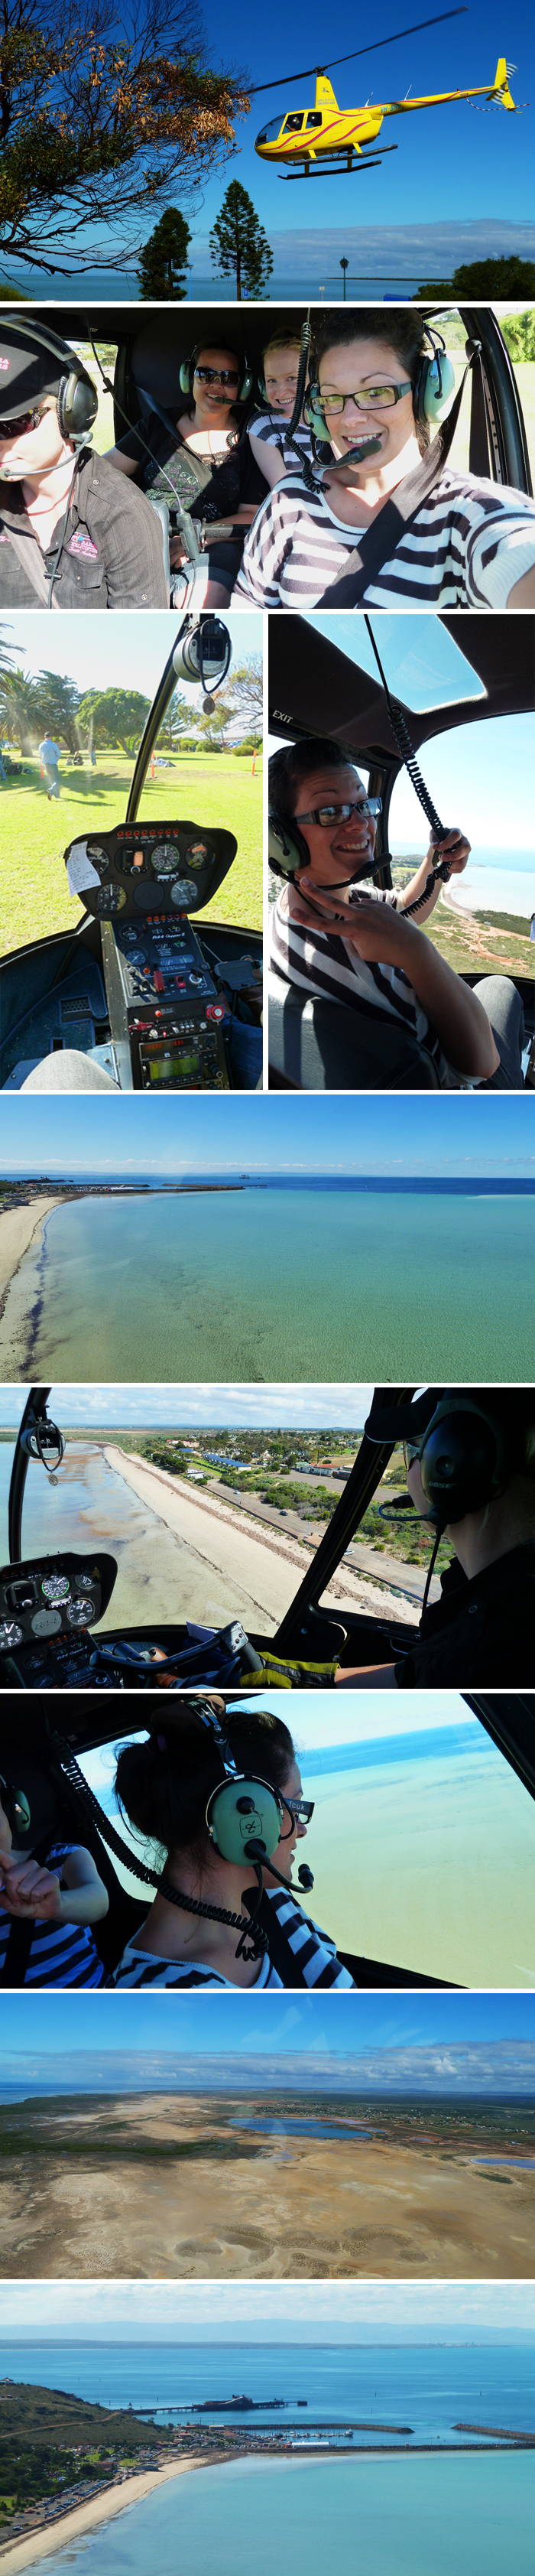 Flying over Whyalla beach in a helicopter!